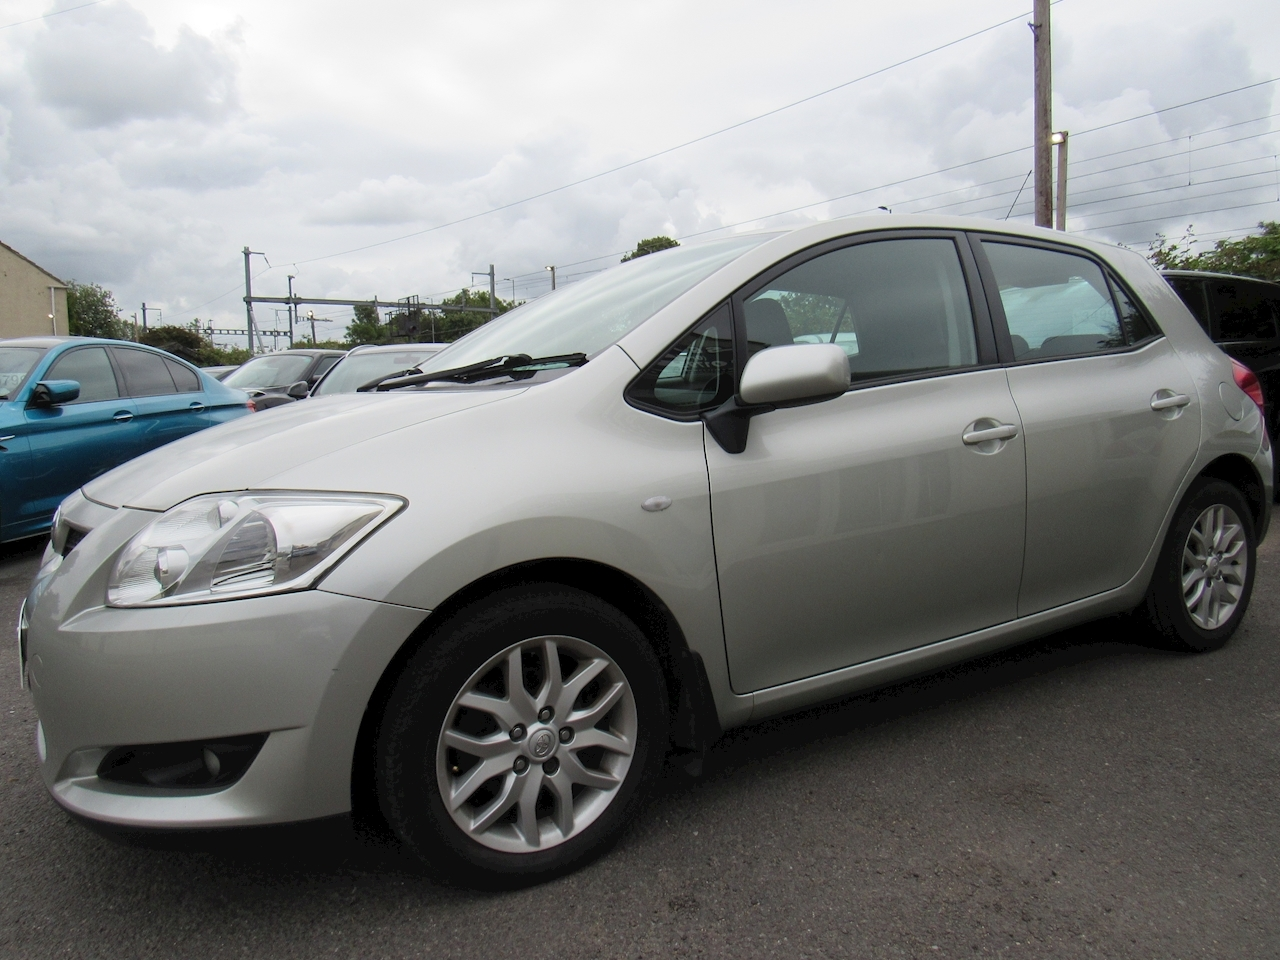 Auris Tr Vvt-I Hatchback 1.6 Manual Petrol